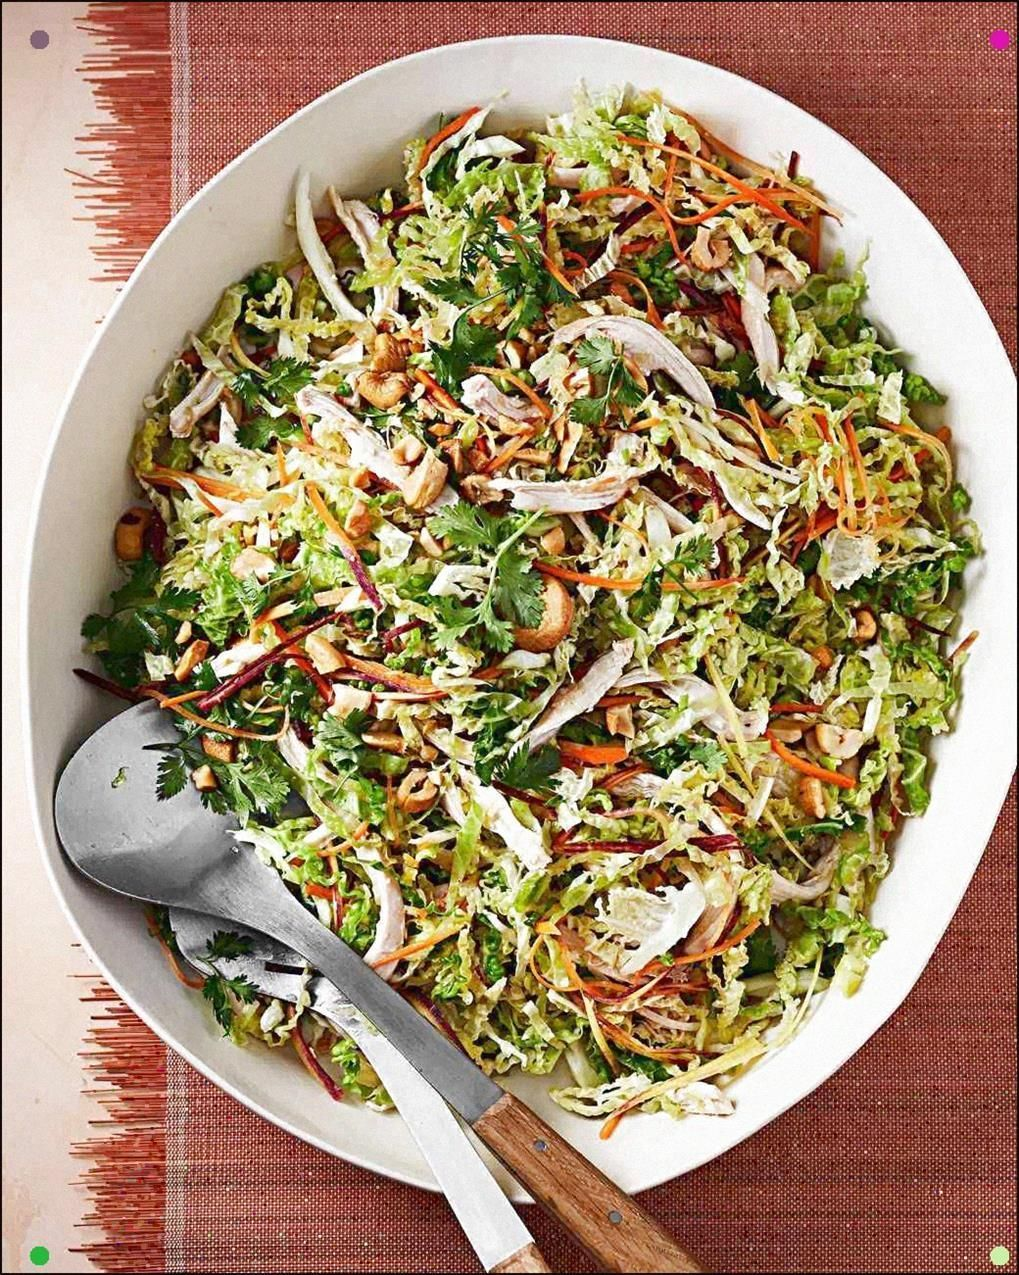 Ginger-Chicken Slaw Recipe Martha Stewart Living Ginger Usually Marries Well With Garlic, And This Salad Is No Exception. #marrymechicken Ginger-Chicken Slaw Recipe Martha Stewart Living Ginger Usually Marries Well With Garlic, And This Salad Is No Exception. #marrymechicken Ginger-Chicken Slaw Recipe Martha Stewart Living Ginger Usually Marries Well With Garlic, And This Salad Is No Exception. #marrymechicken Ginger-Chicken Slaw Recipe Martha Stewart Living Ginger Usually Marries Well With Garl #marrymechicken